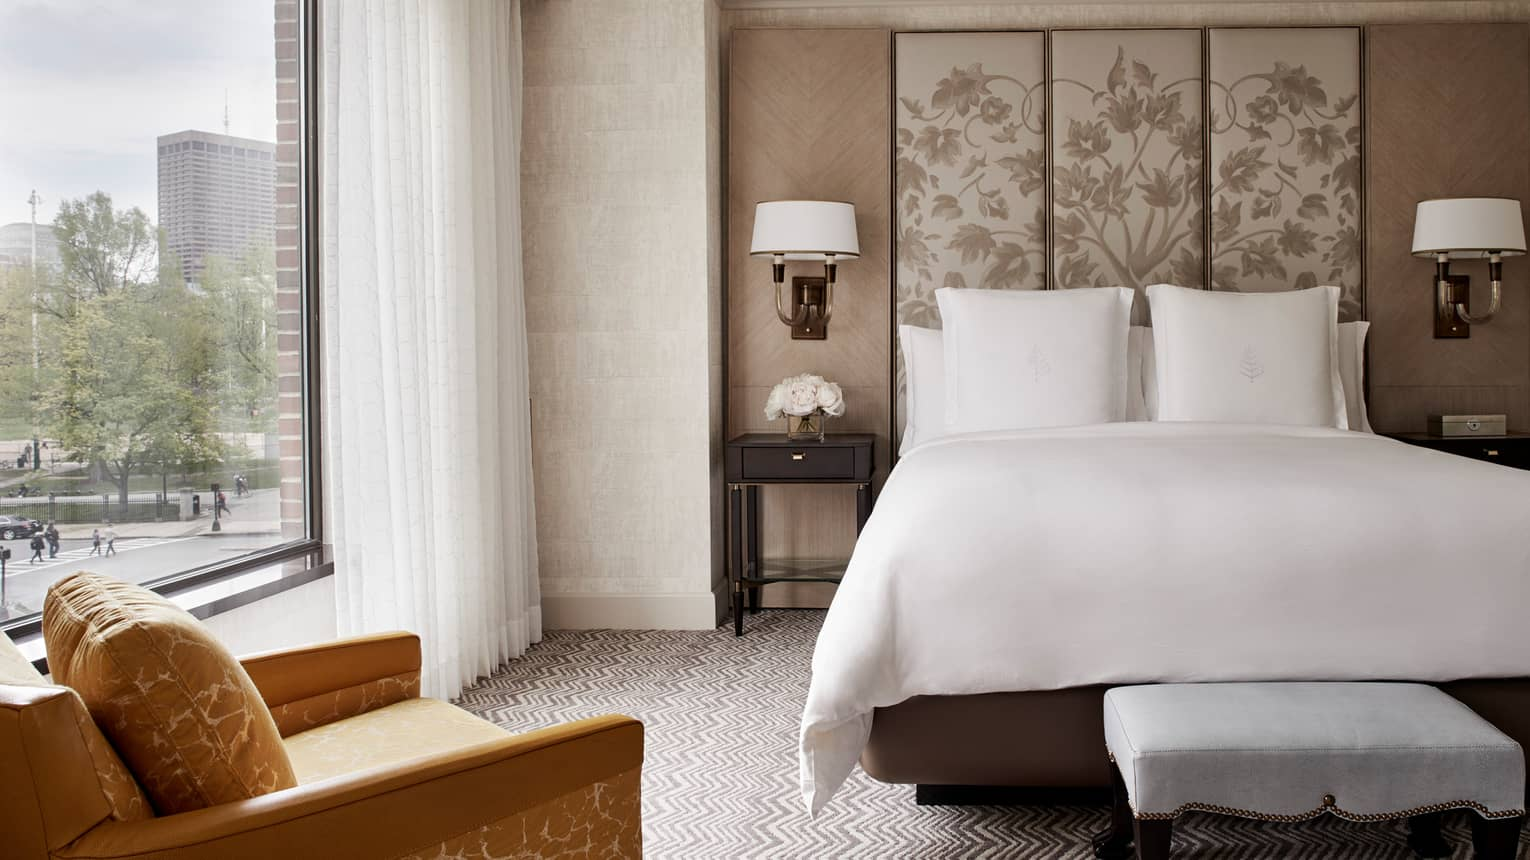 Headboards In Front Of Windows Boston Hotel Suites Rooms Luxury Accommodations Four Seasons